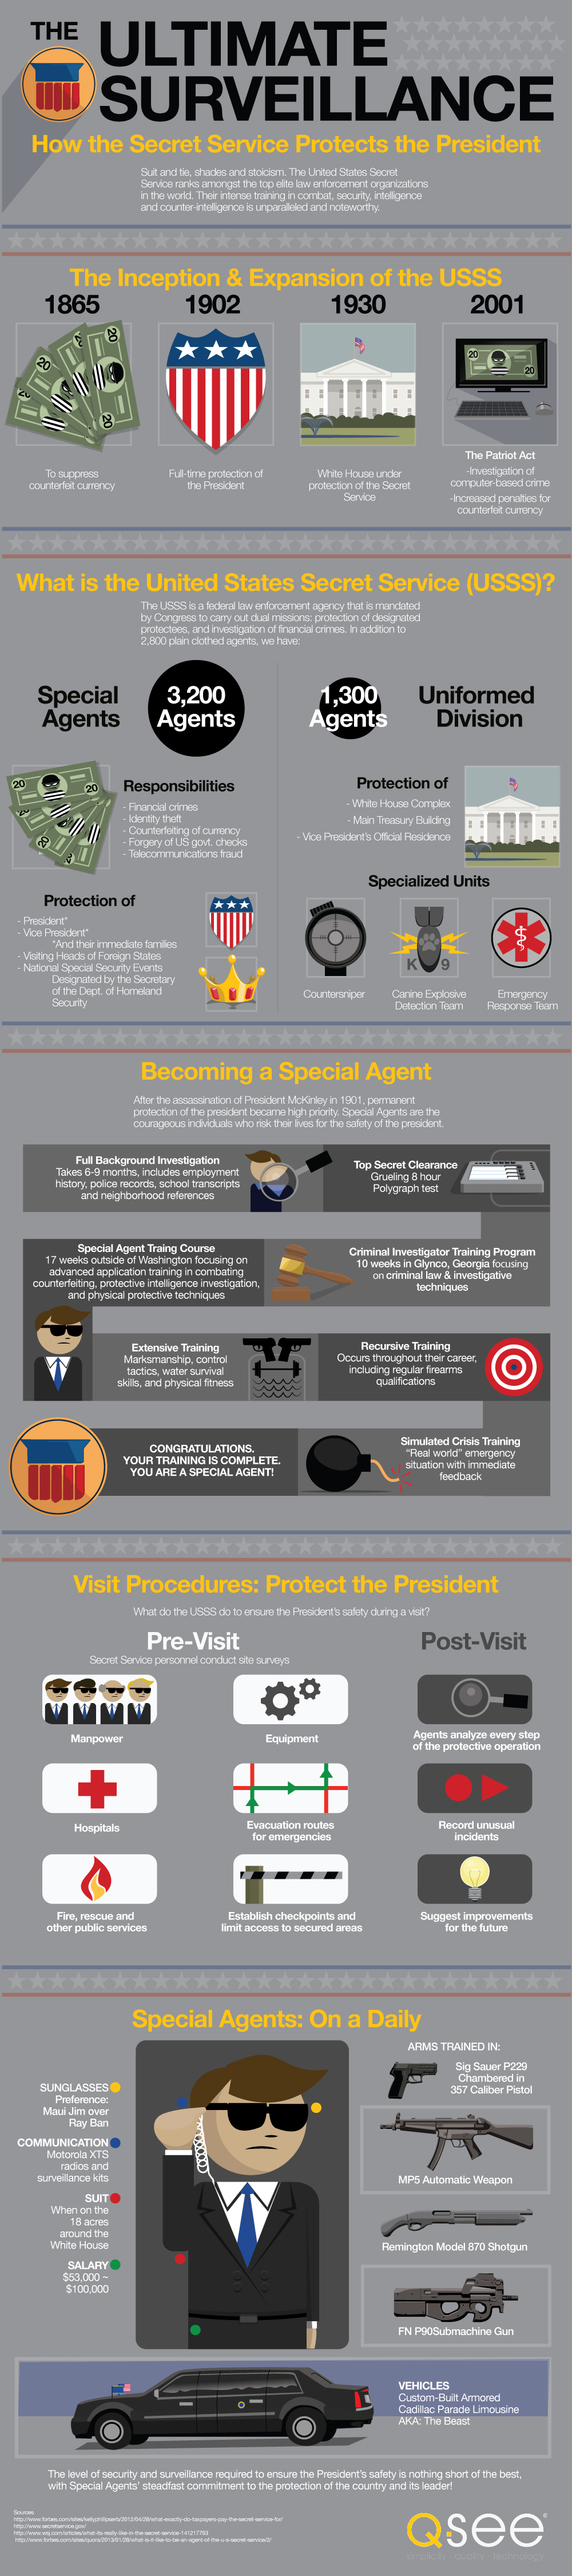 The Ultimate Surveillance: How The Secret Service Protects The President